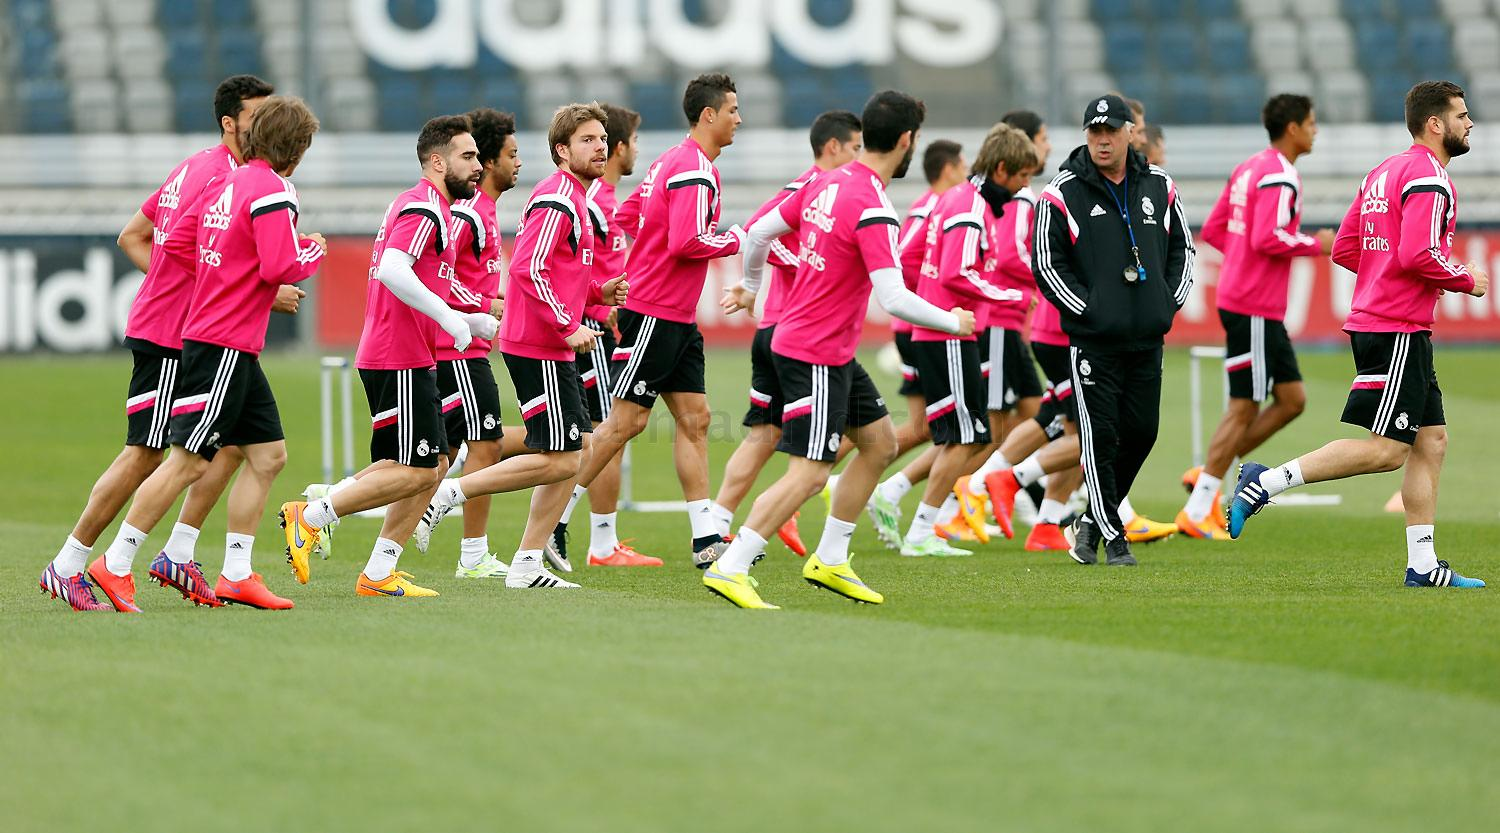 Real Madrid - Entrenamiento del Real Madrid - 16-04-2015